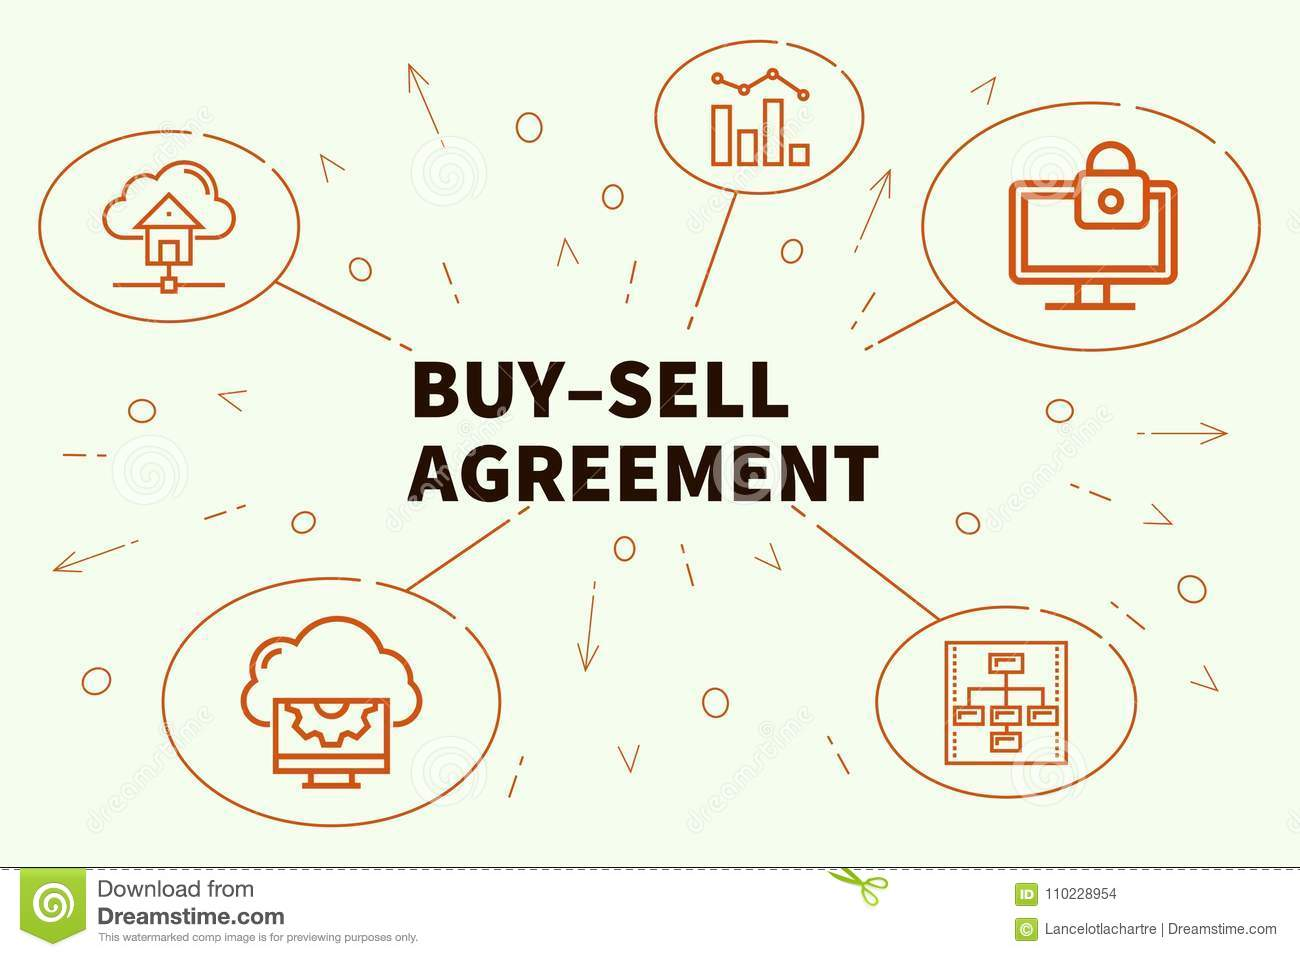 Business illustration showing the concept of buy–sell agreement